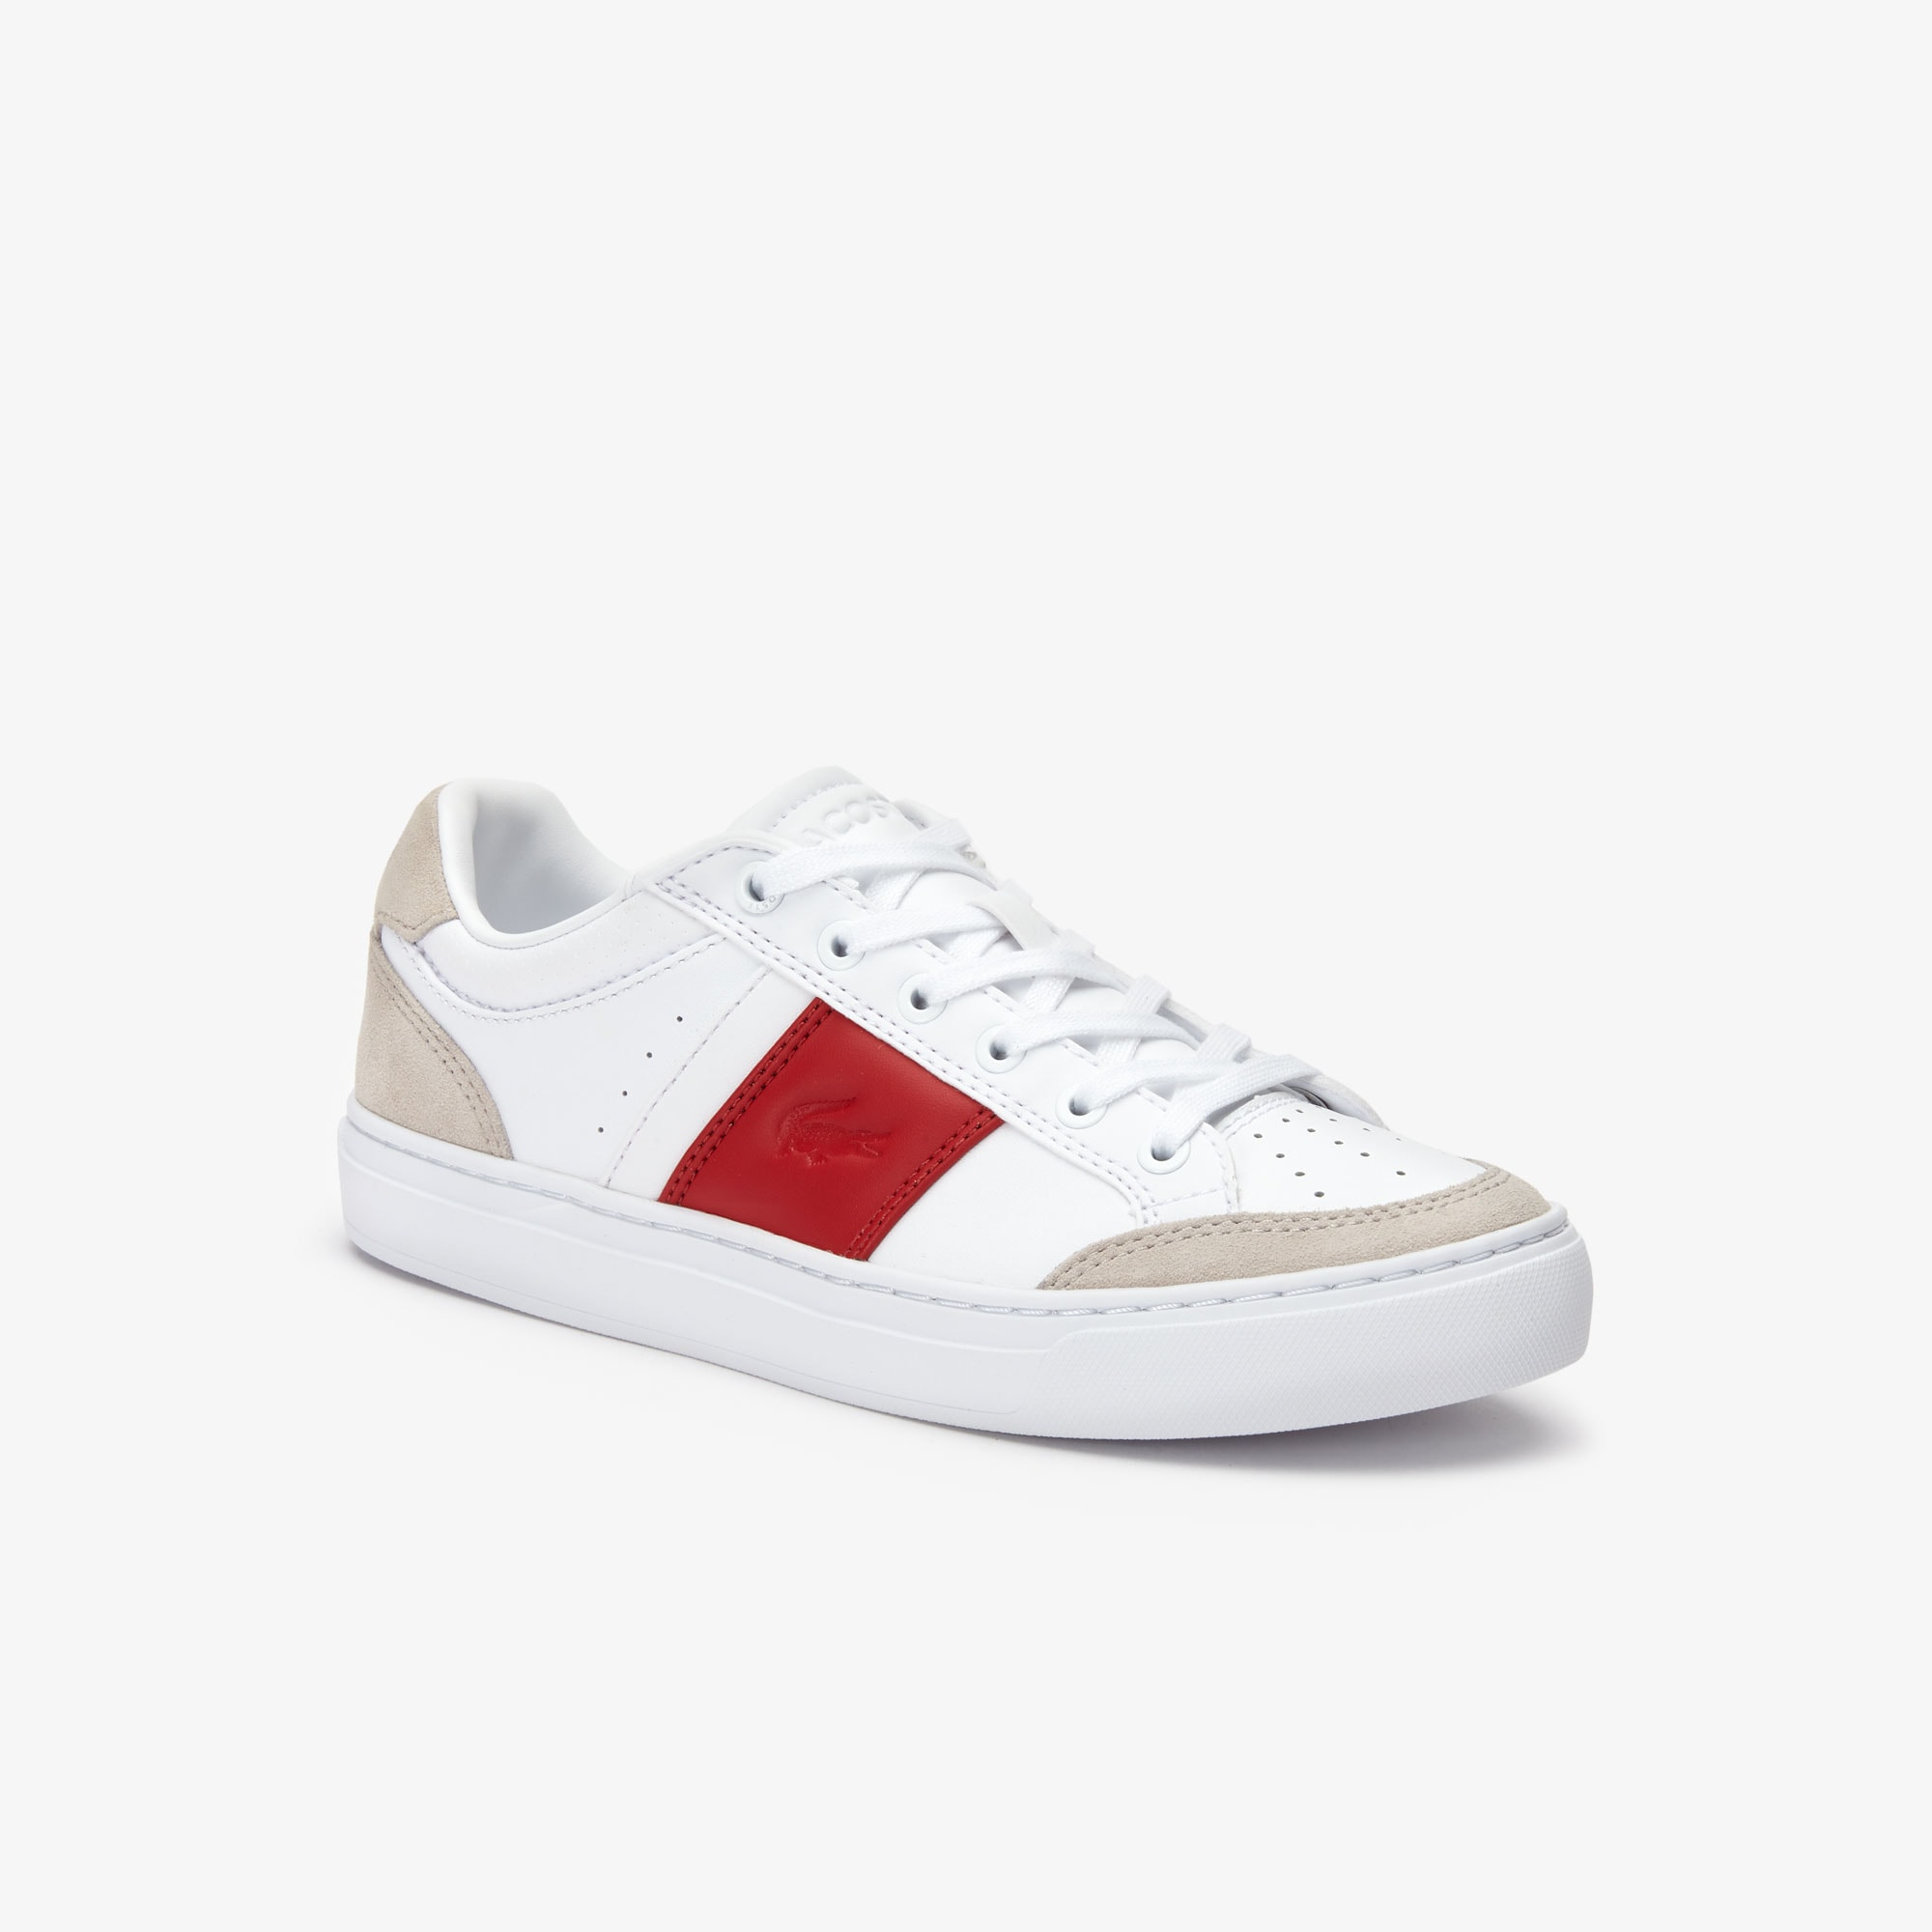 Lacoste Sneakers Men's Courtline Leather and Suede Sneakers